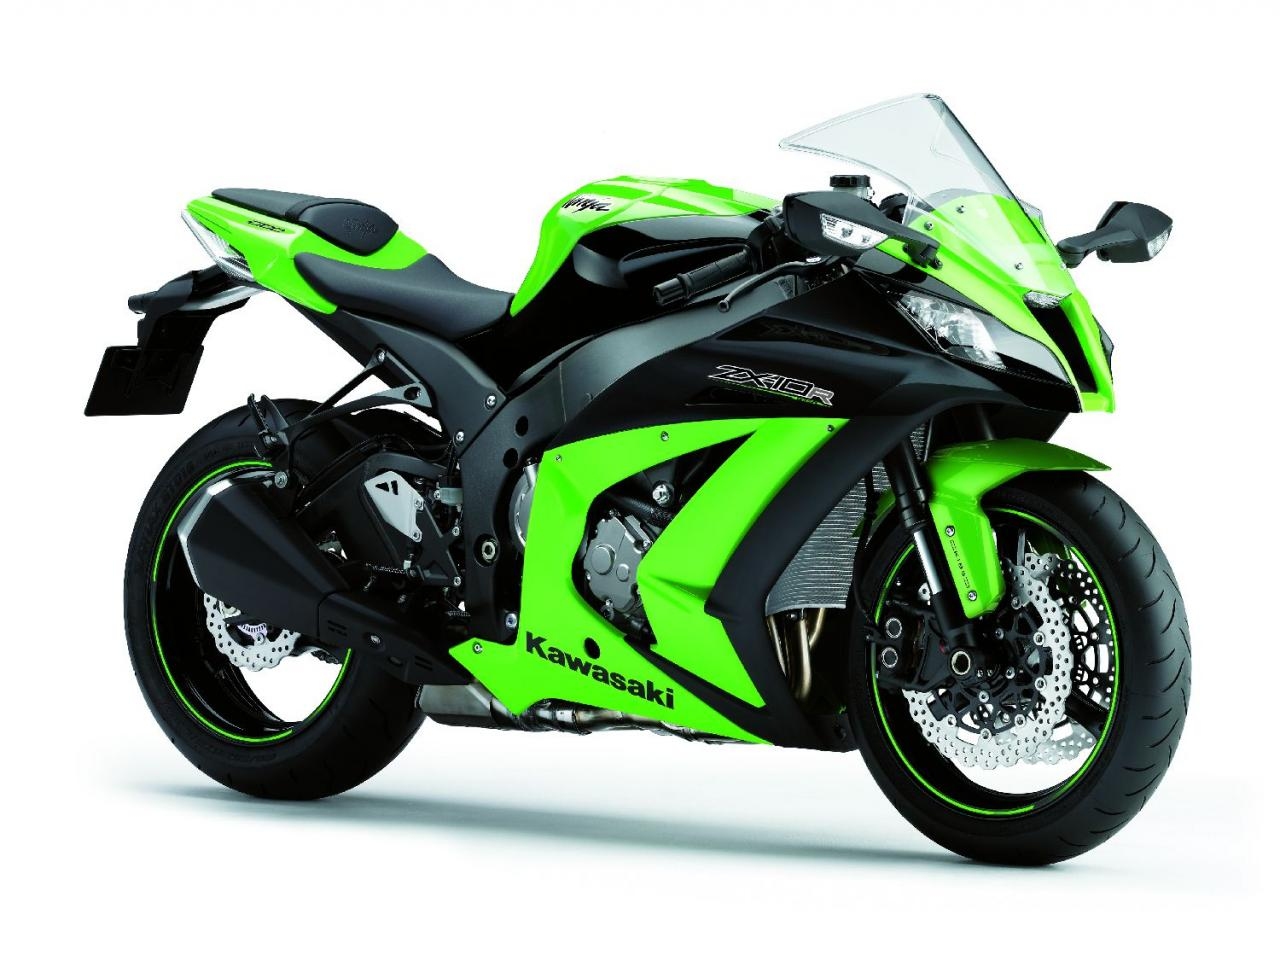 kawasaki zx 10r und zx 6r 2012 motorrad fotos motorrad bilder. Black Bedroom Furniture Sets. Home Design Ideas